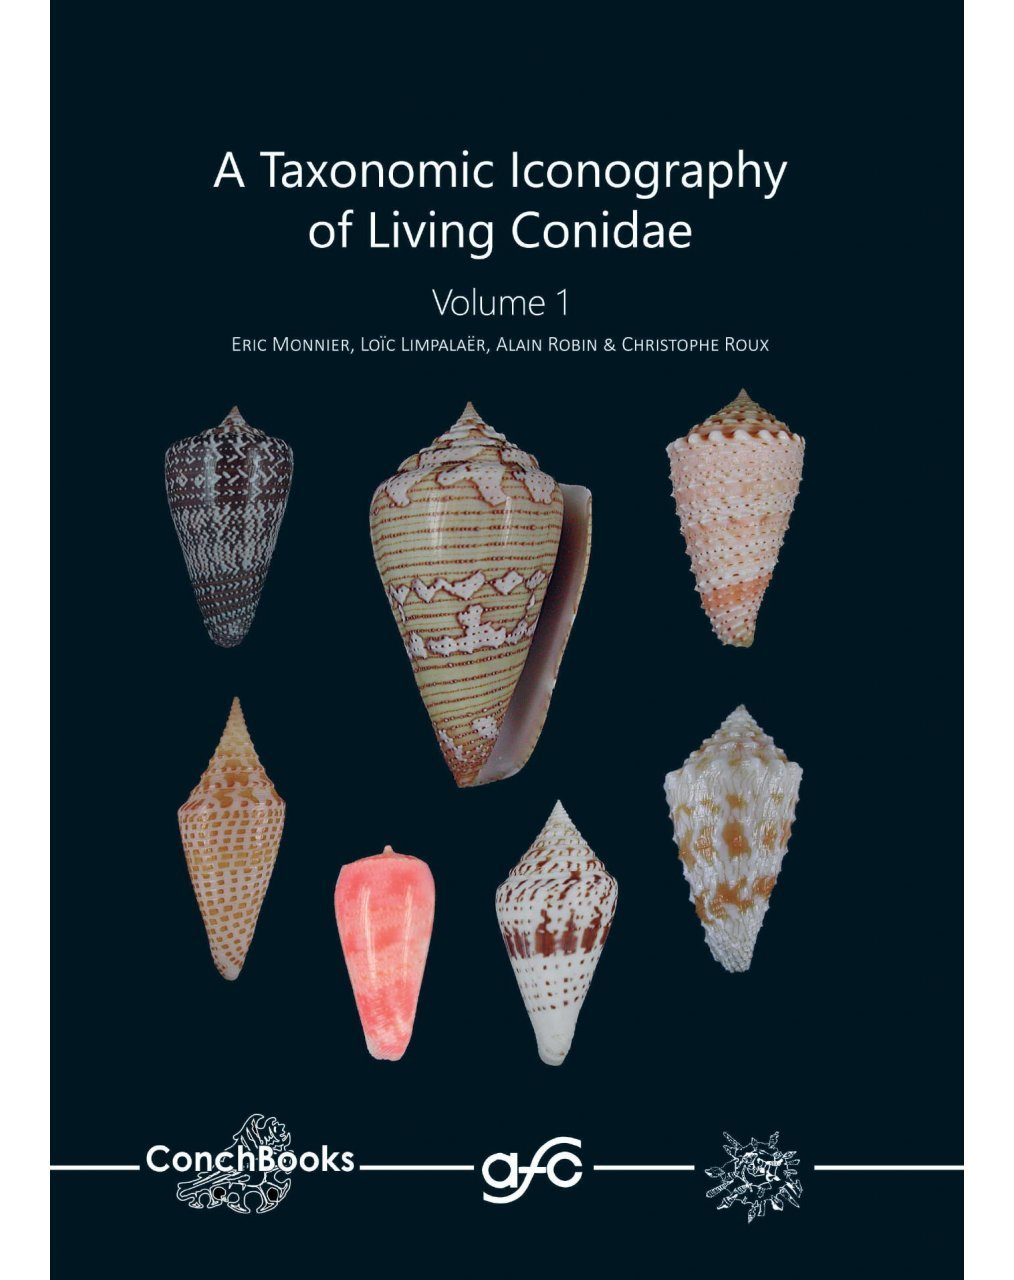 A Taxonomic Iconography of Living Conidae, Volume 1